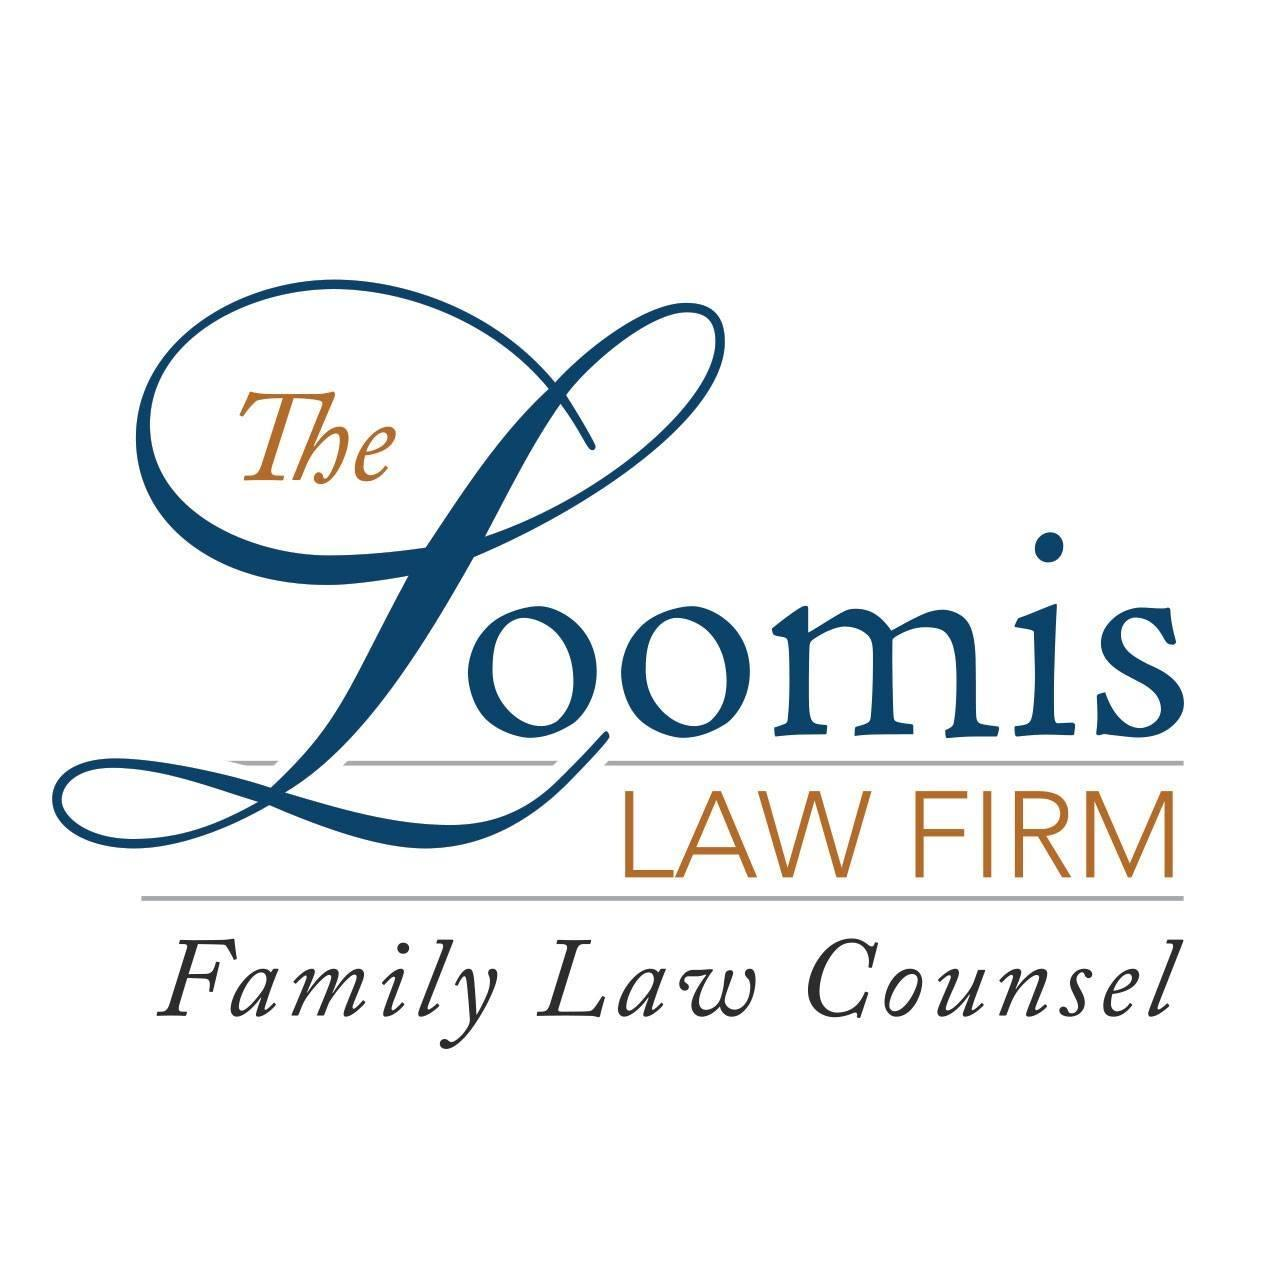 The Loomis Law Firm